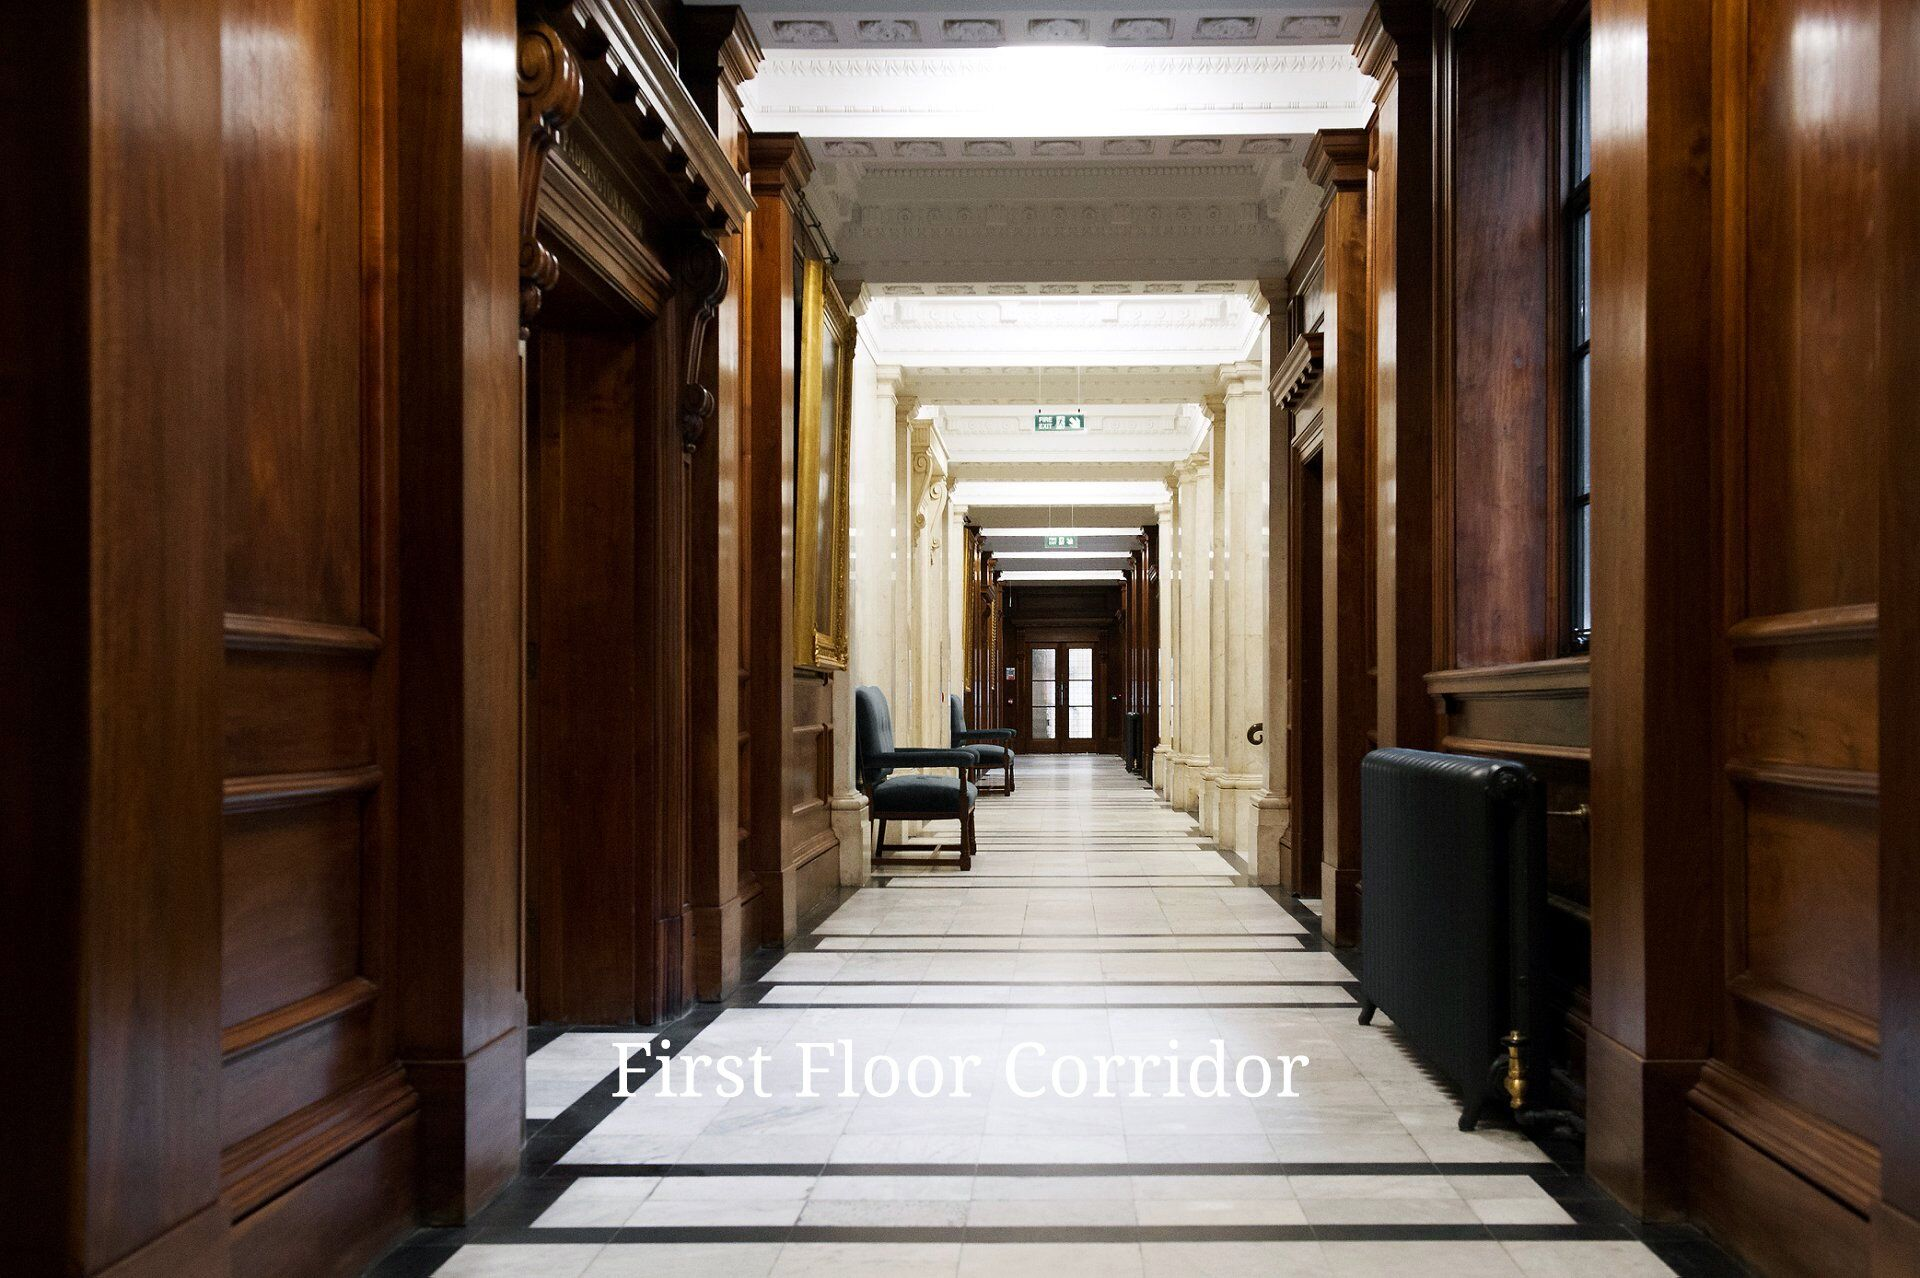 First floor corridor in Old Marylebone Town Hall outside the row of seven ceremony rooms